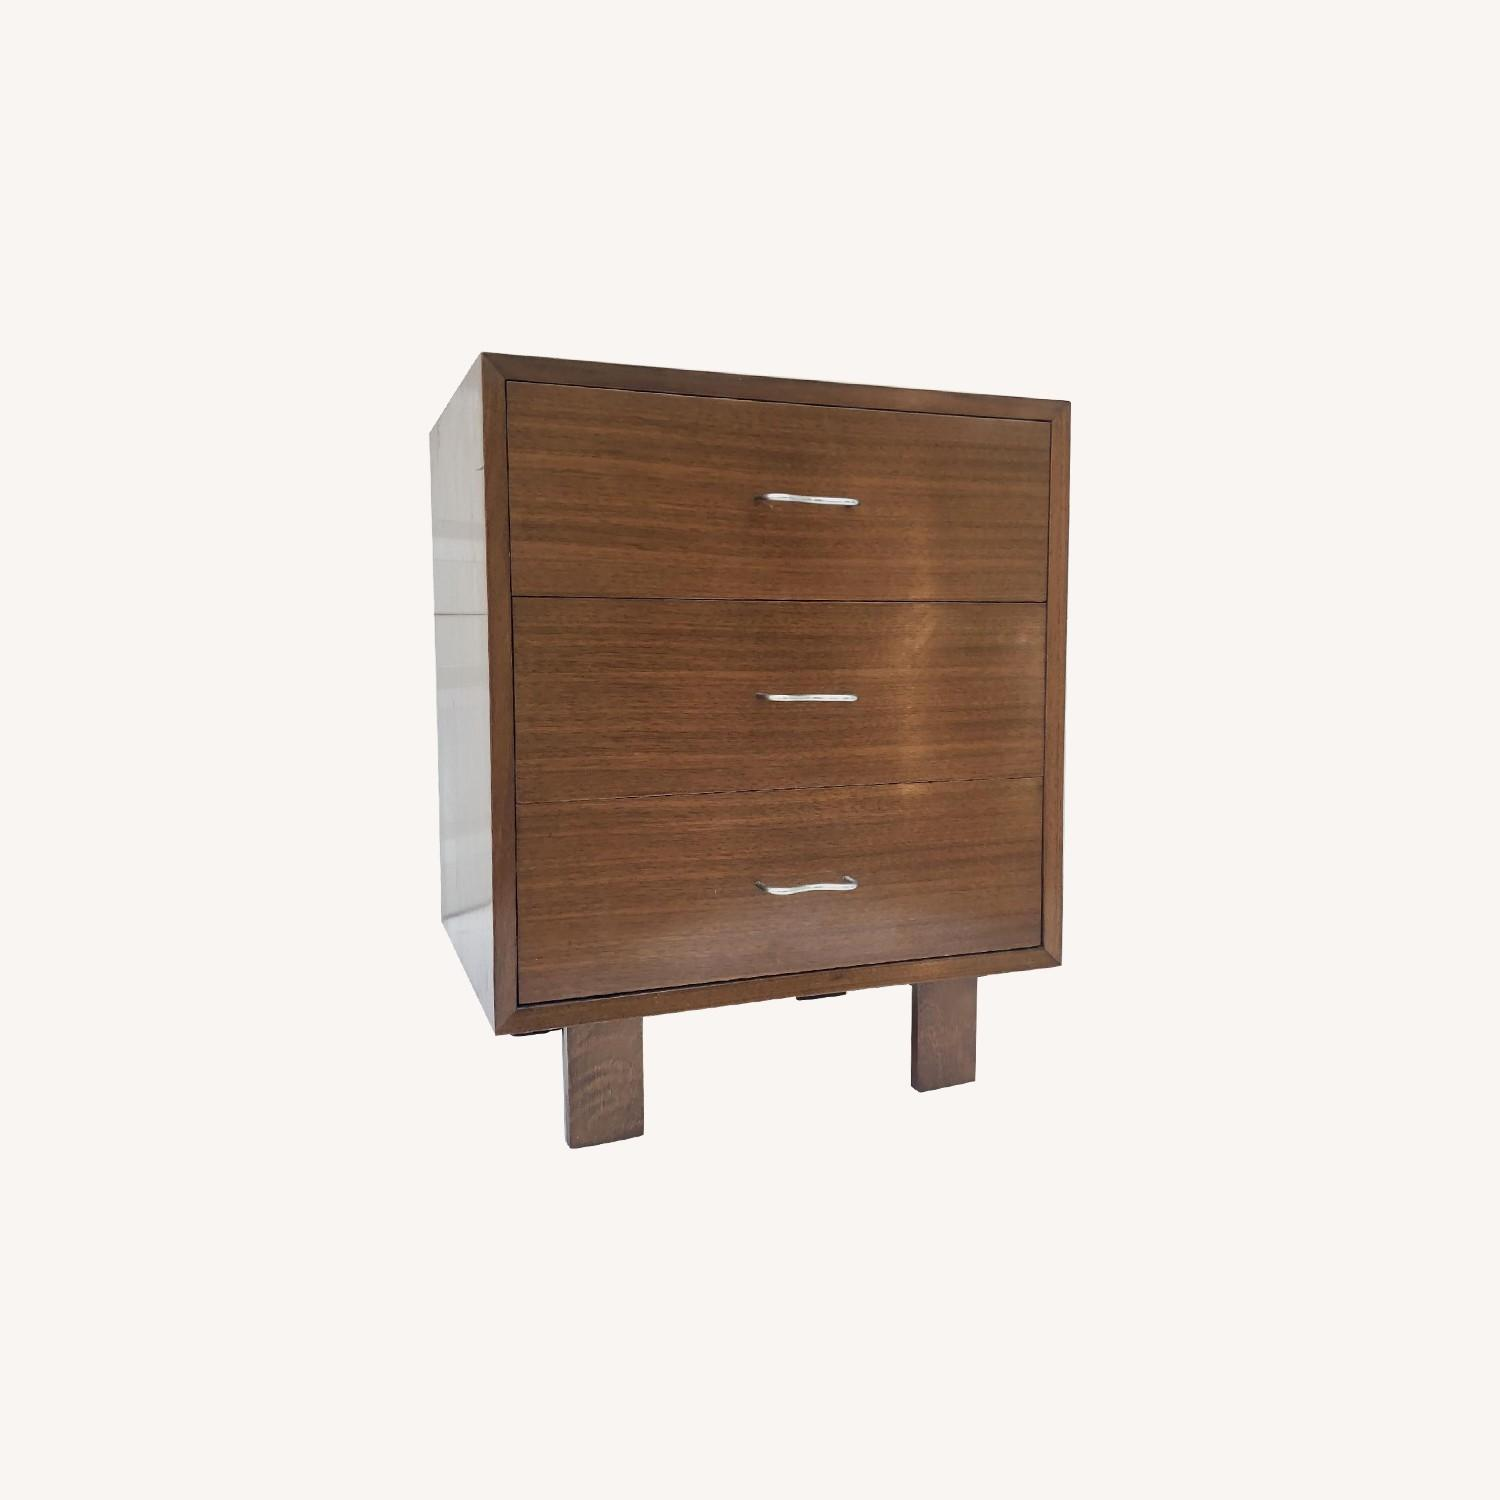 George Nelson for Herman Miller Mid-Century 3-Drawer Chest - image-0